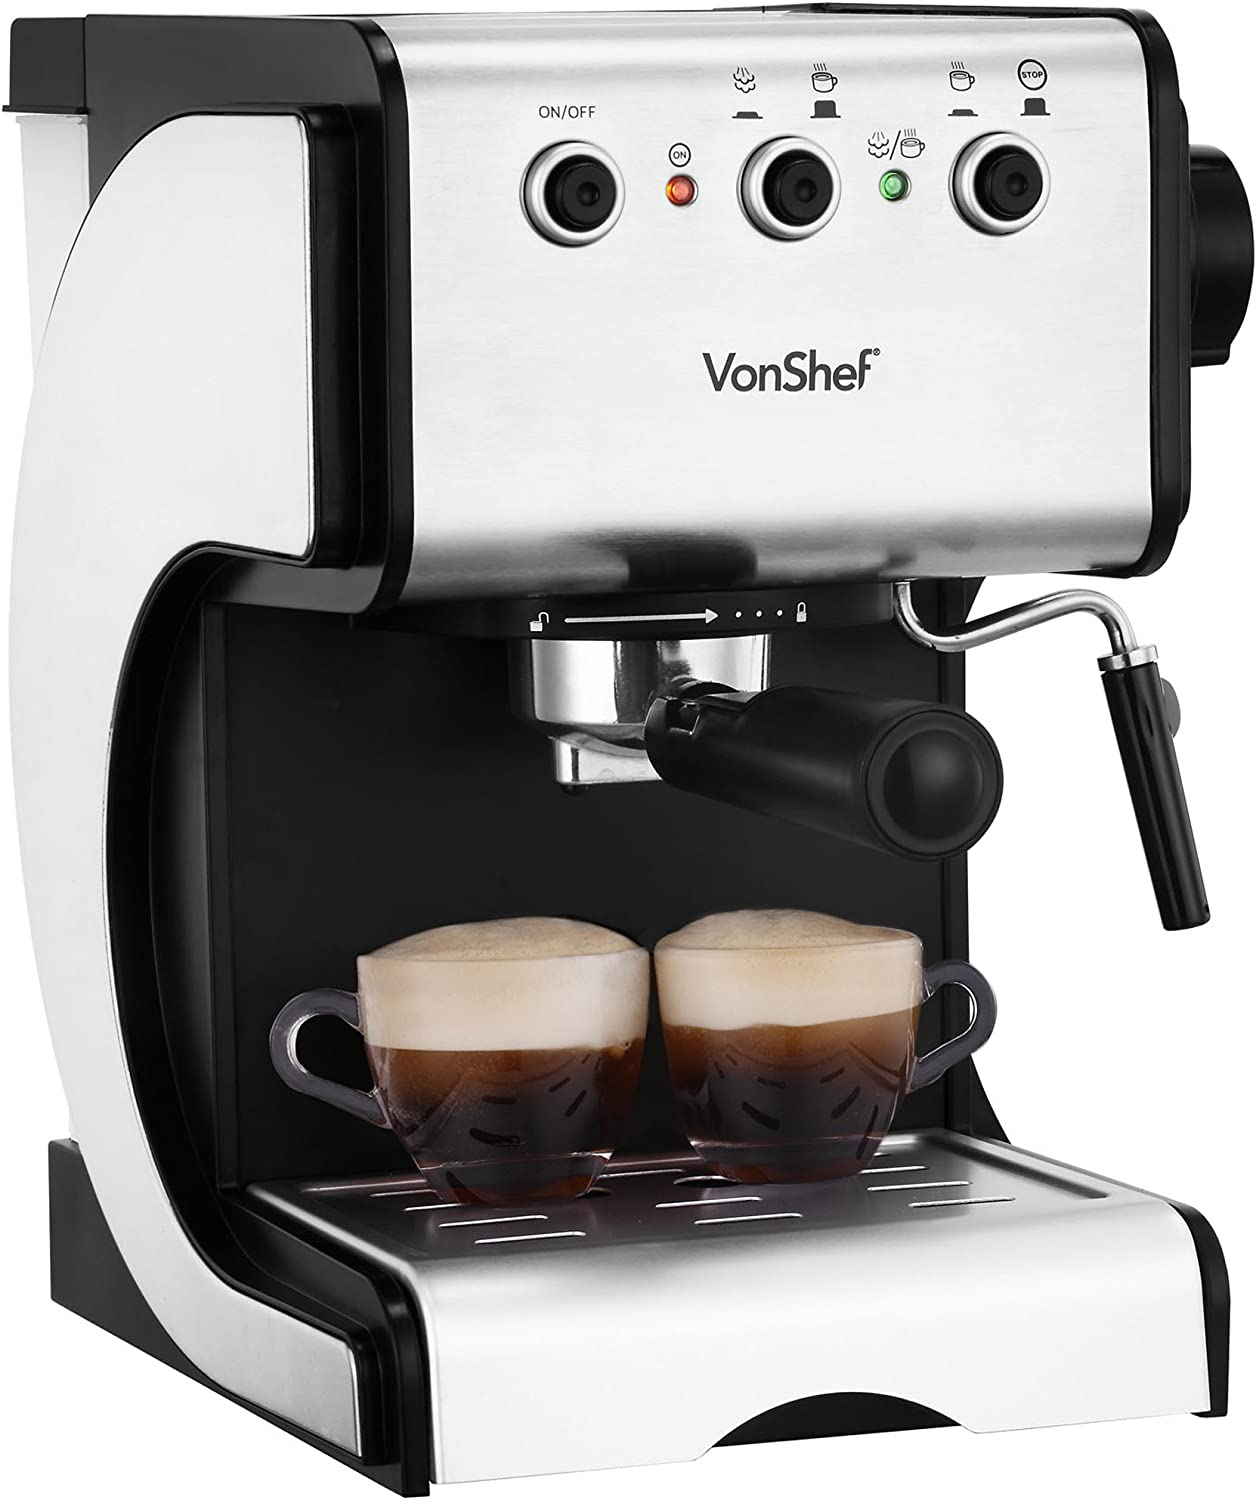 Vonshef 15 Bar Espresso Coffee Machine Maker Stainless Steel 15l Steam Control Dial Frothing Wand Removable Drip Tray Indicator Light